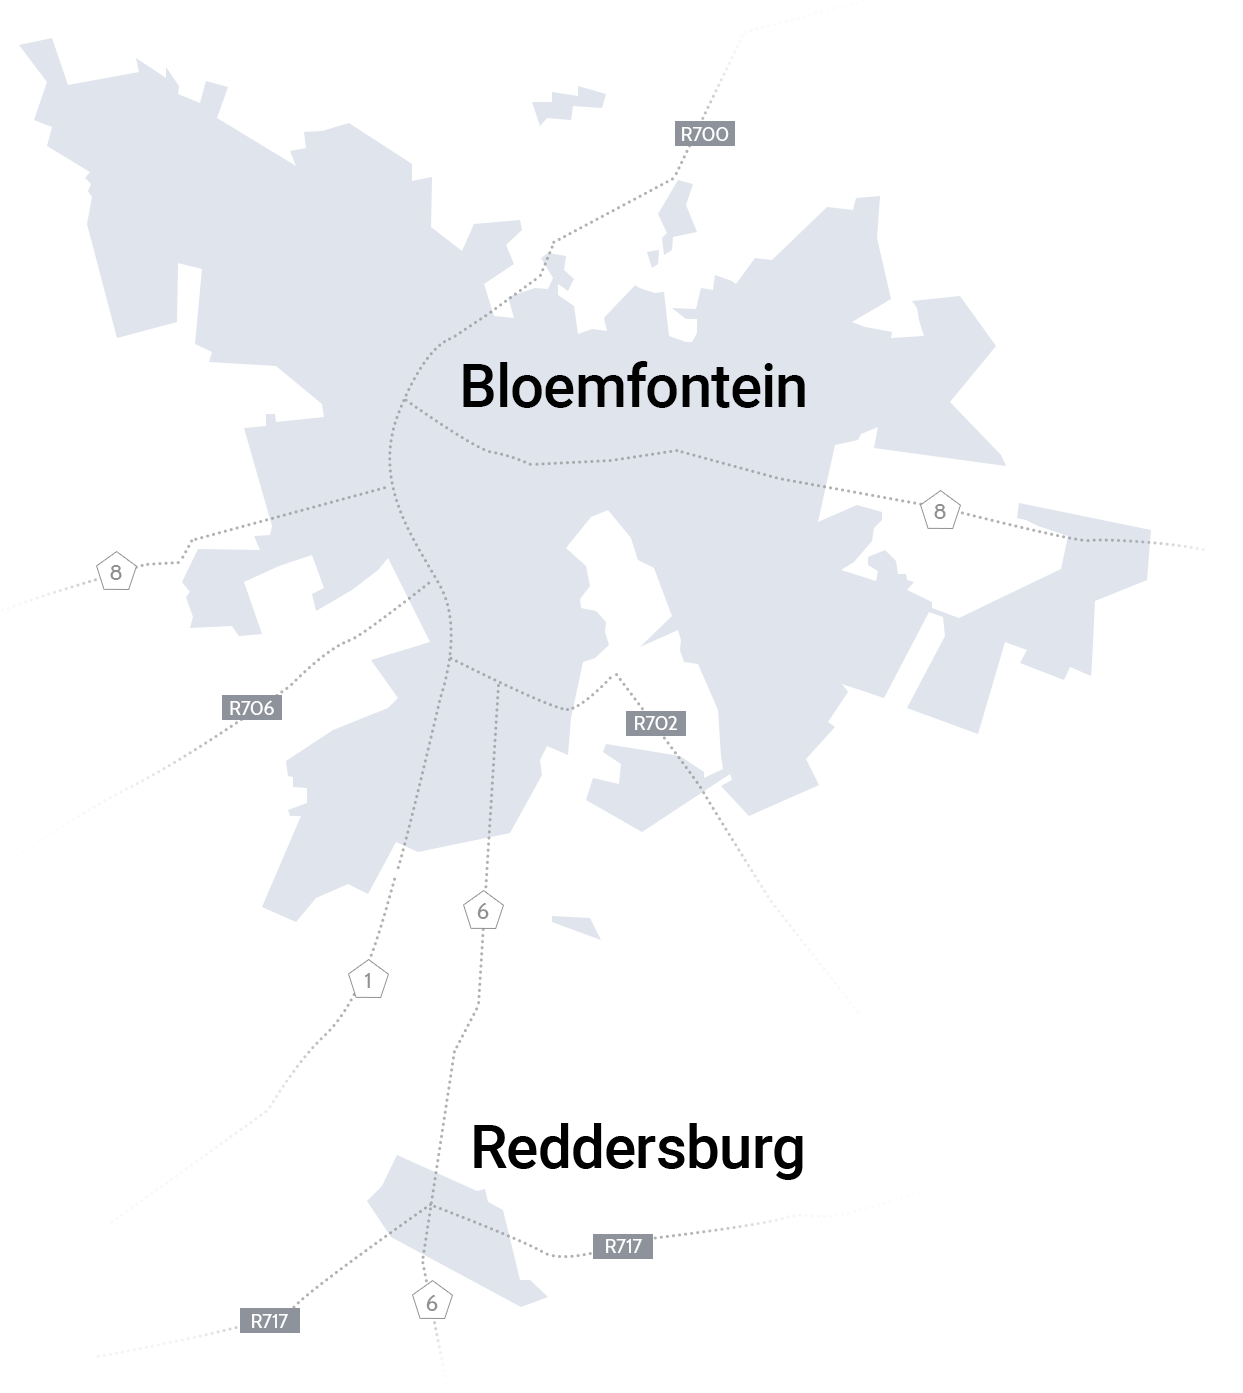 Search for property in Bloemfontein